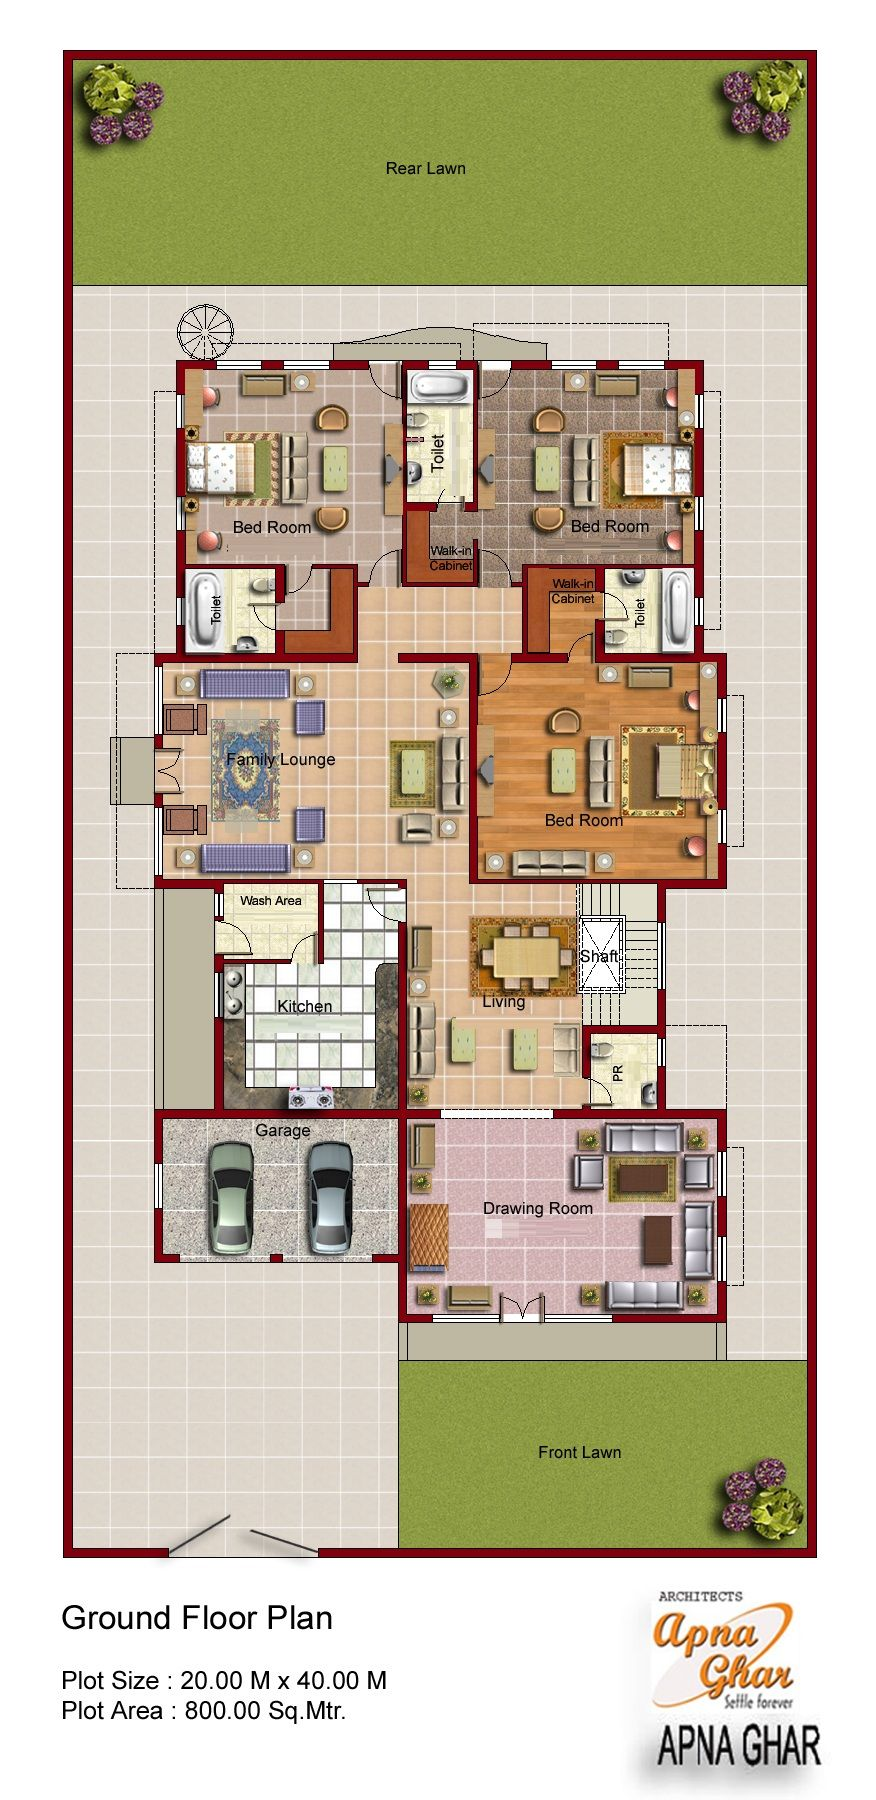 2d floor plan for modern duplex 2 floor house area 800 for House design program